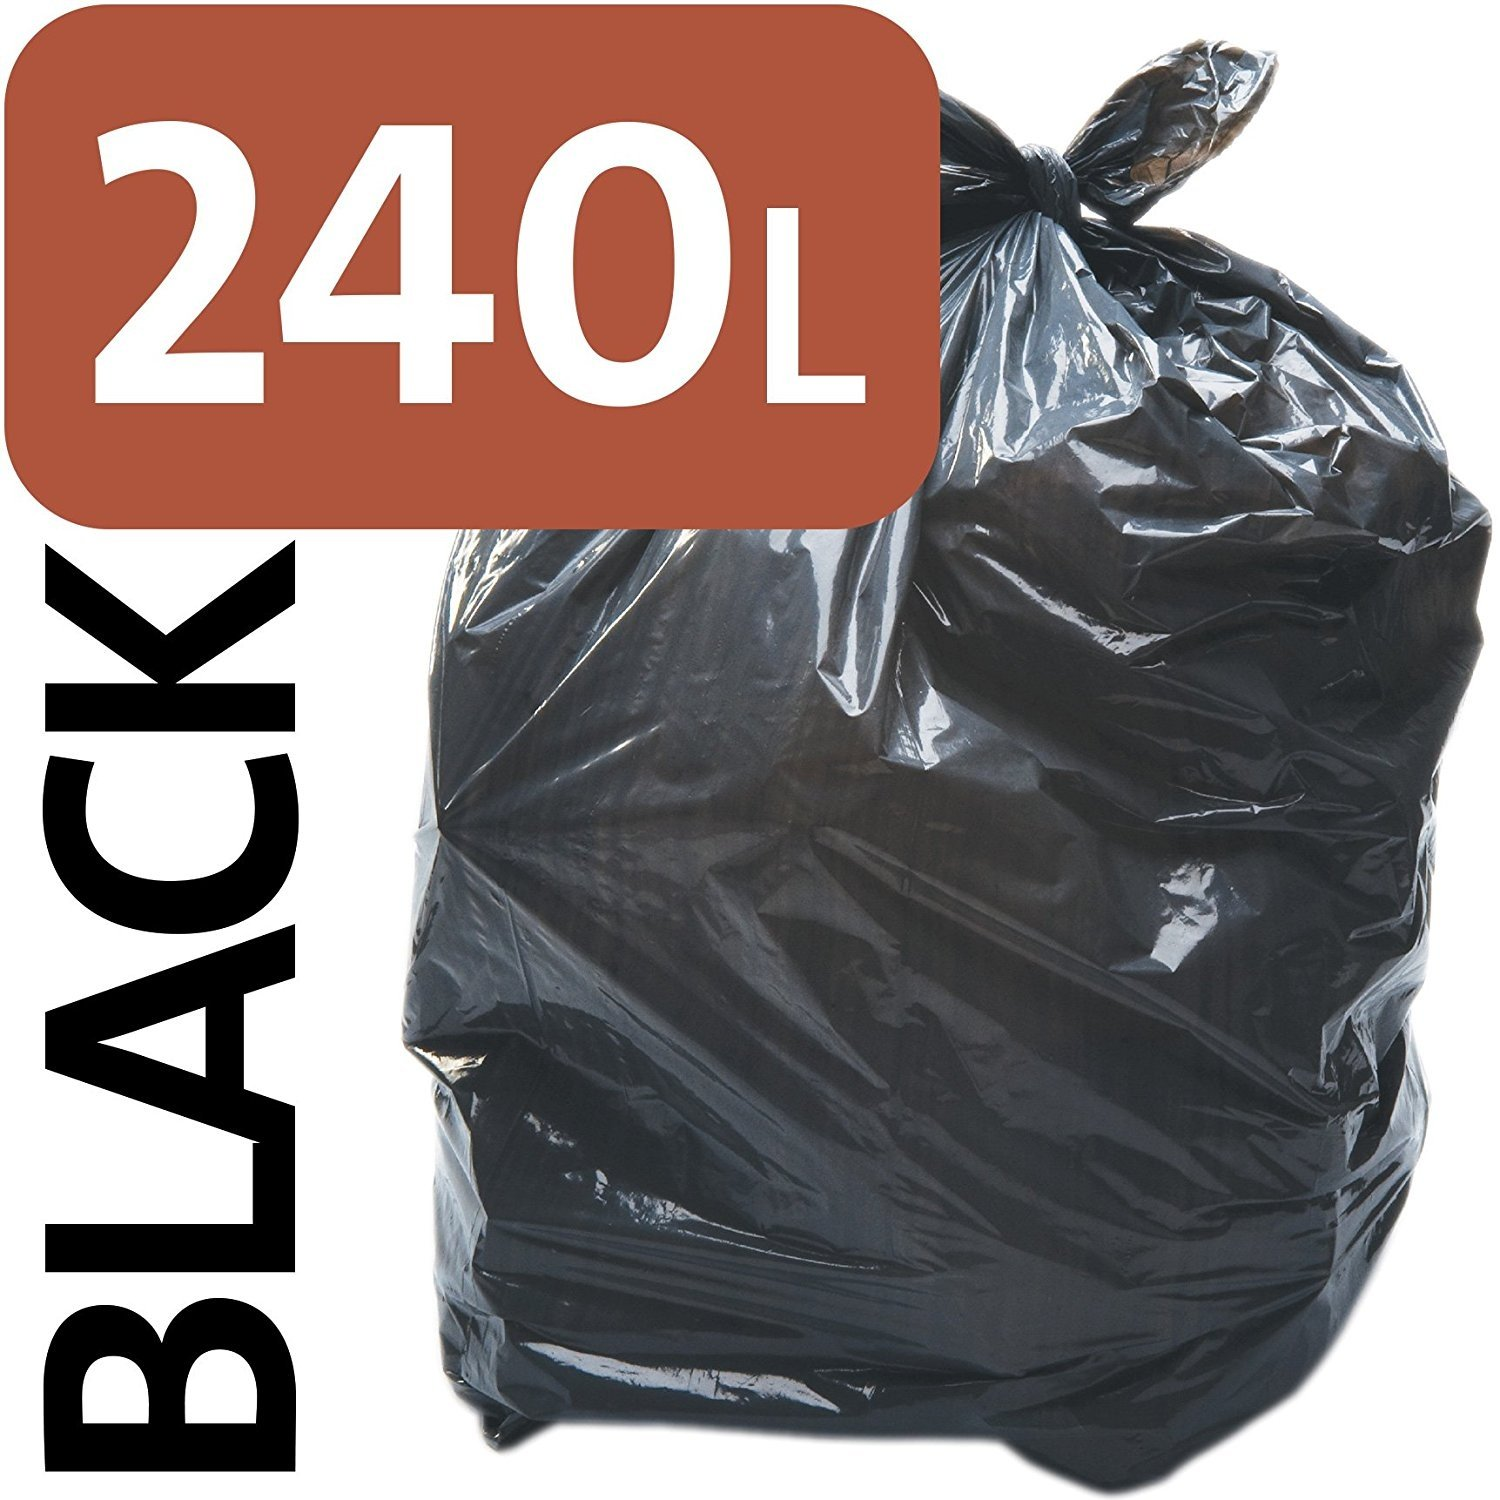 3 x Alina 240L Polythene Black Heavy-Duty Wheeled Bin Liner / Wheelie Refuse Bag / ENSA Compactor Sack / Heavyweight 240 Litre Black Plastic Garbage Bag (3 sacks)